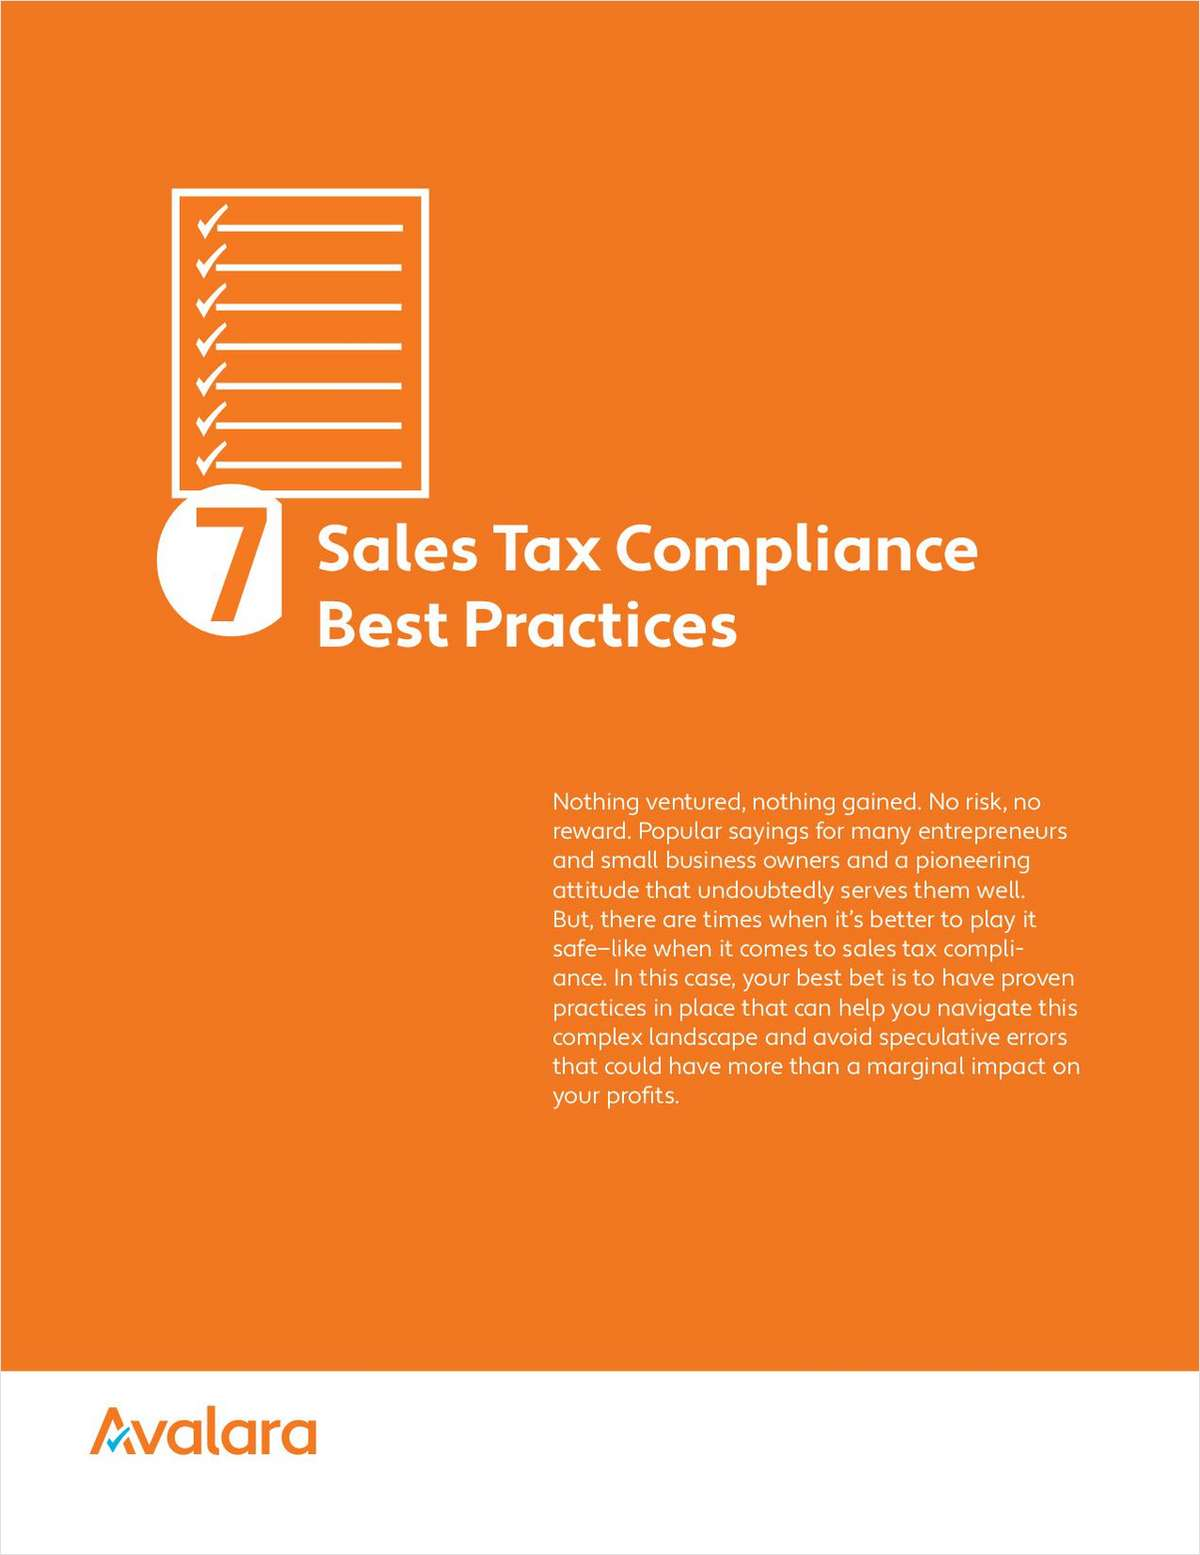 7 Sales Tax Compliance Best Practices